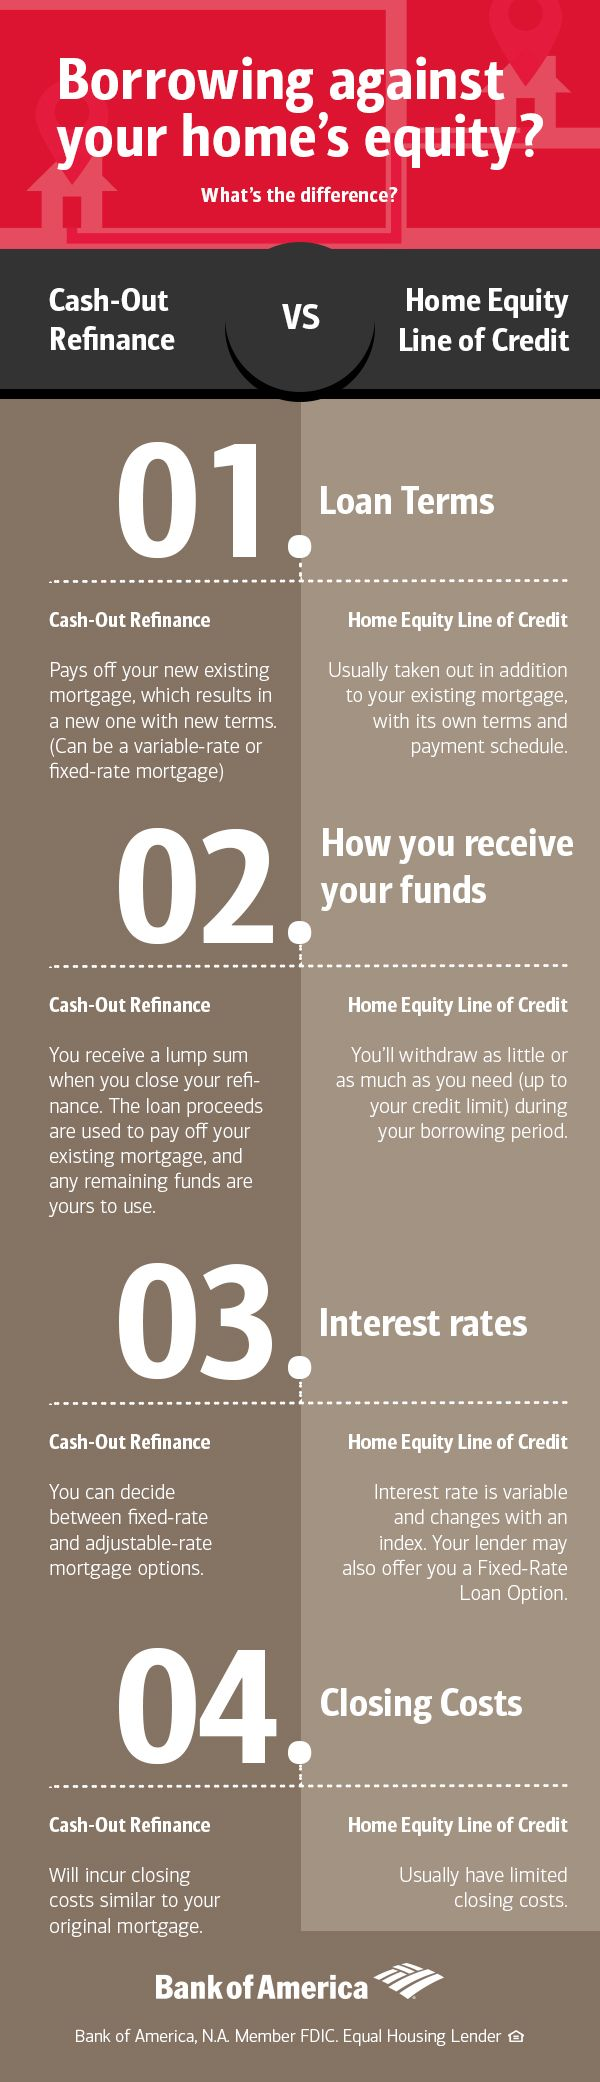 Interested in borrowing against your home's available equity to pay for other expenses? The good news is you have choices, but it can be tricky to weigh the options. This breaks down the key differences between a cash- out refinance and a home equity line of credit.  Learn more about home equity and what works for your financial picture.